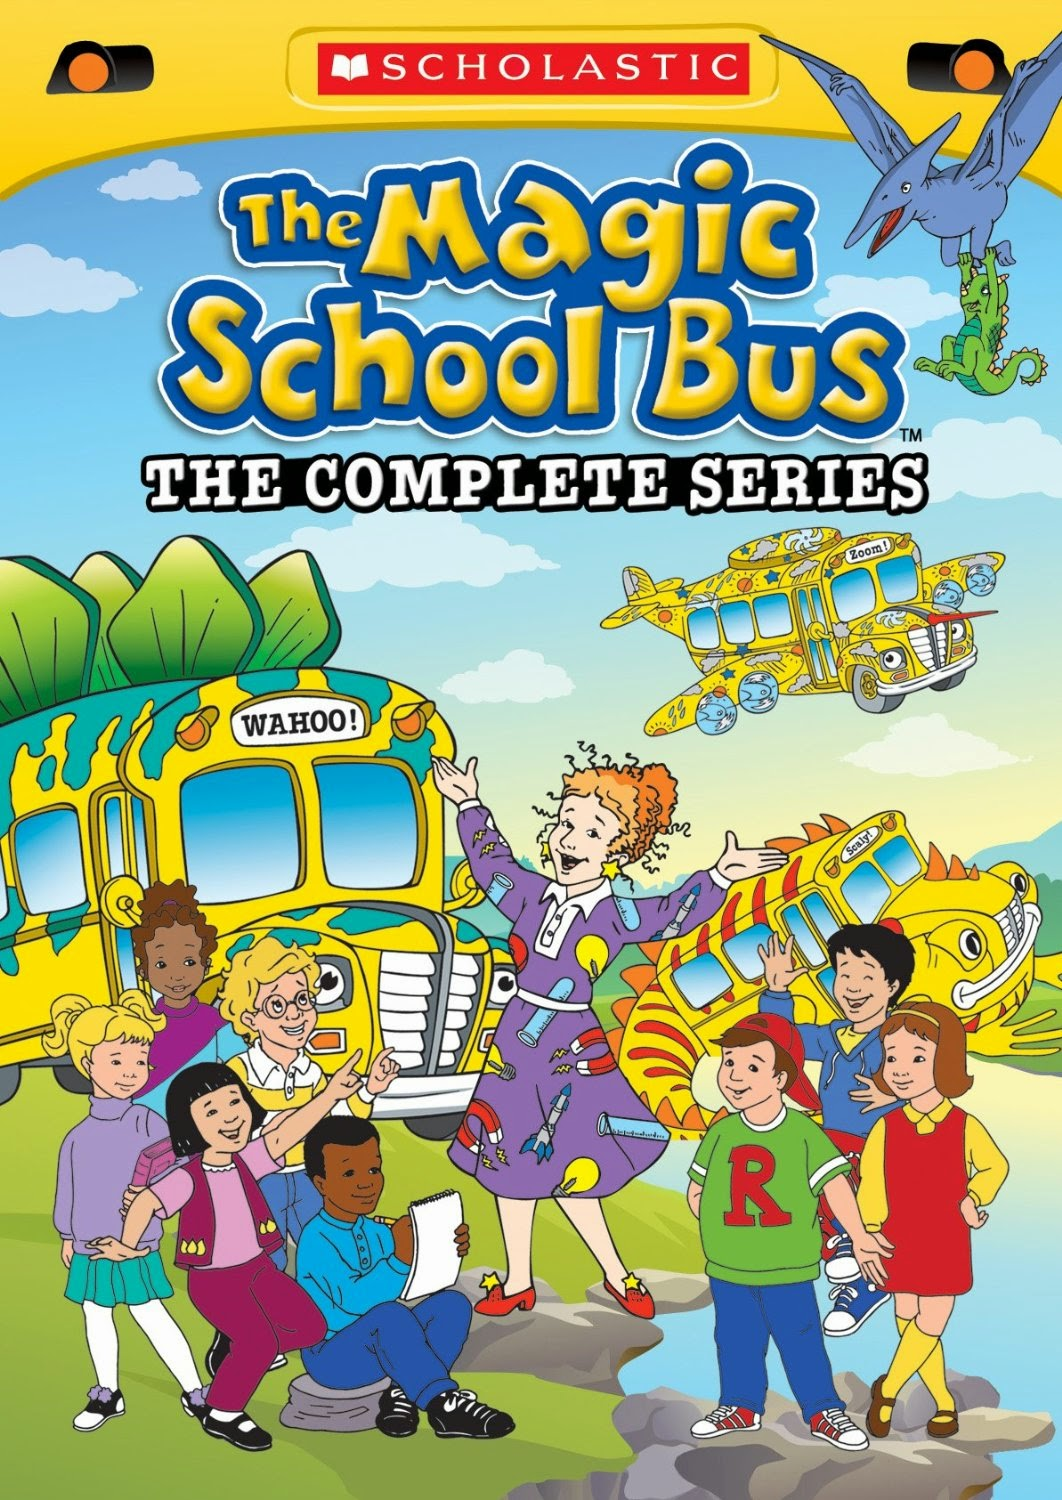 The Magic School Bus DVD series, used as part of ocean theme week preschool